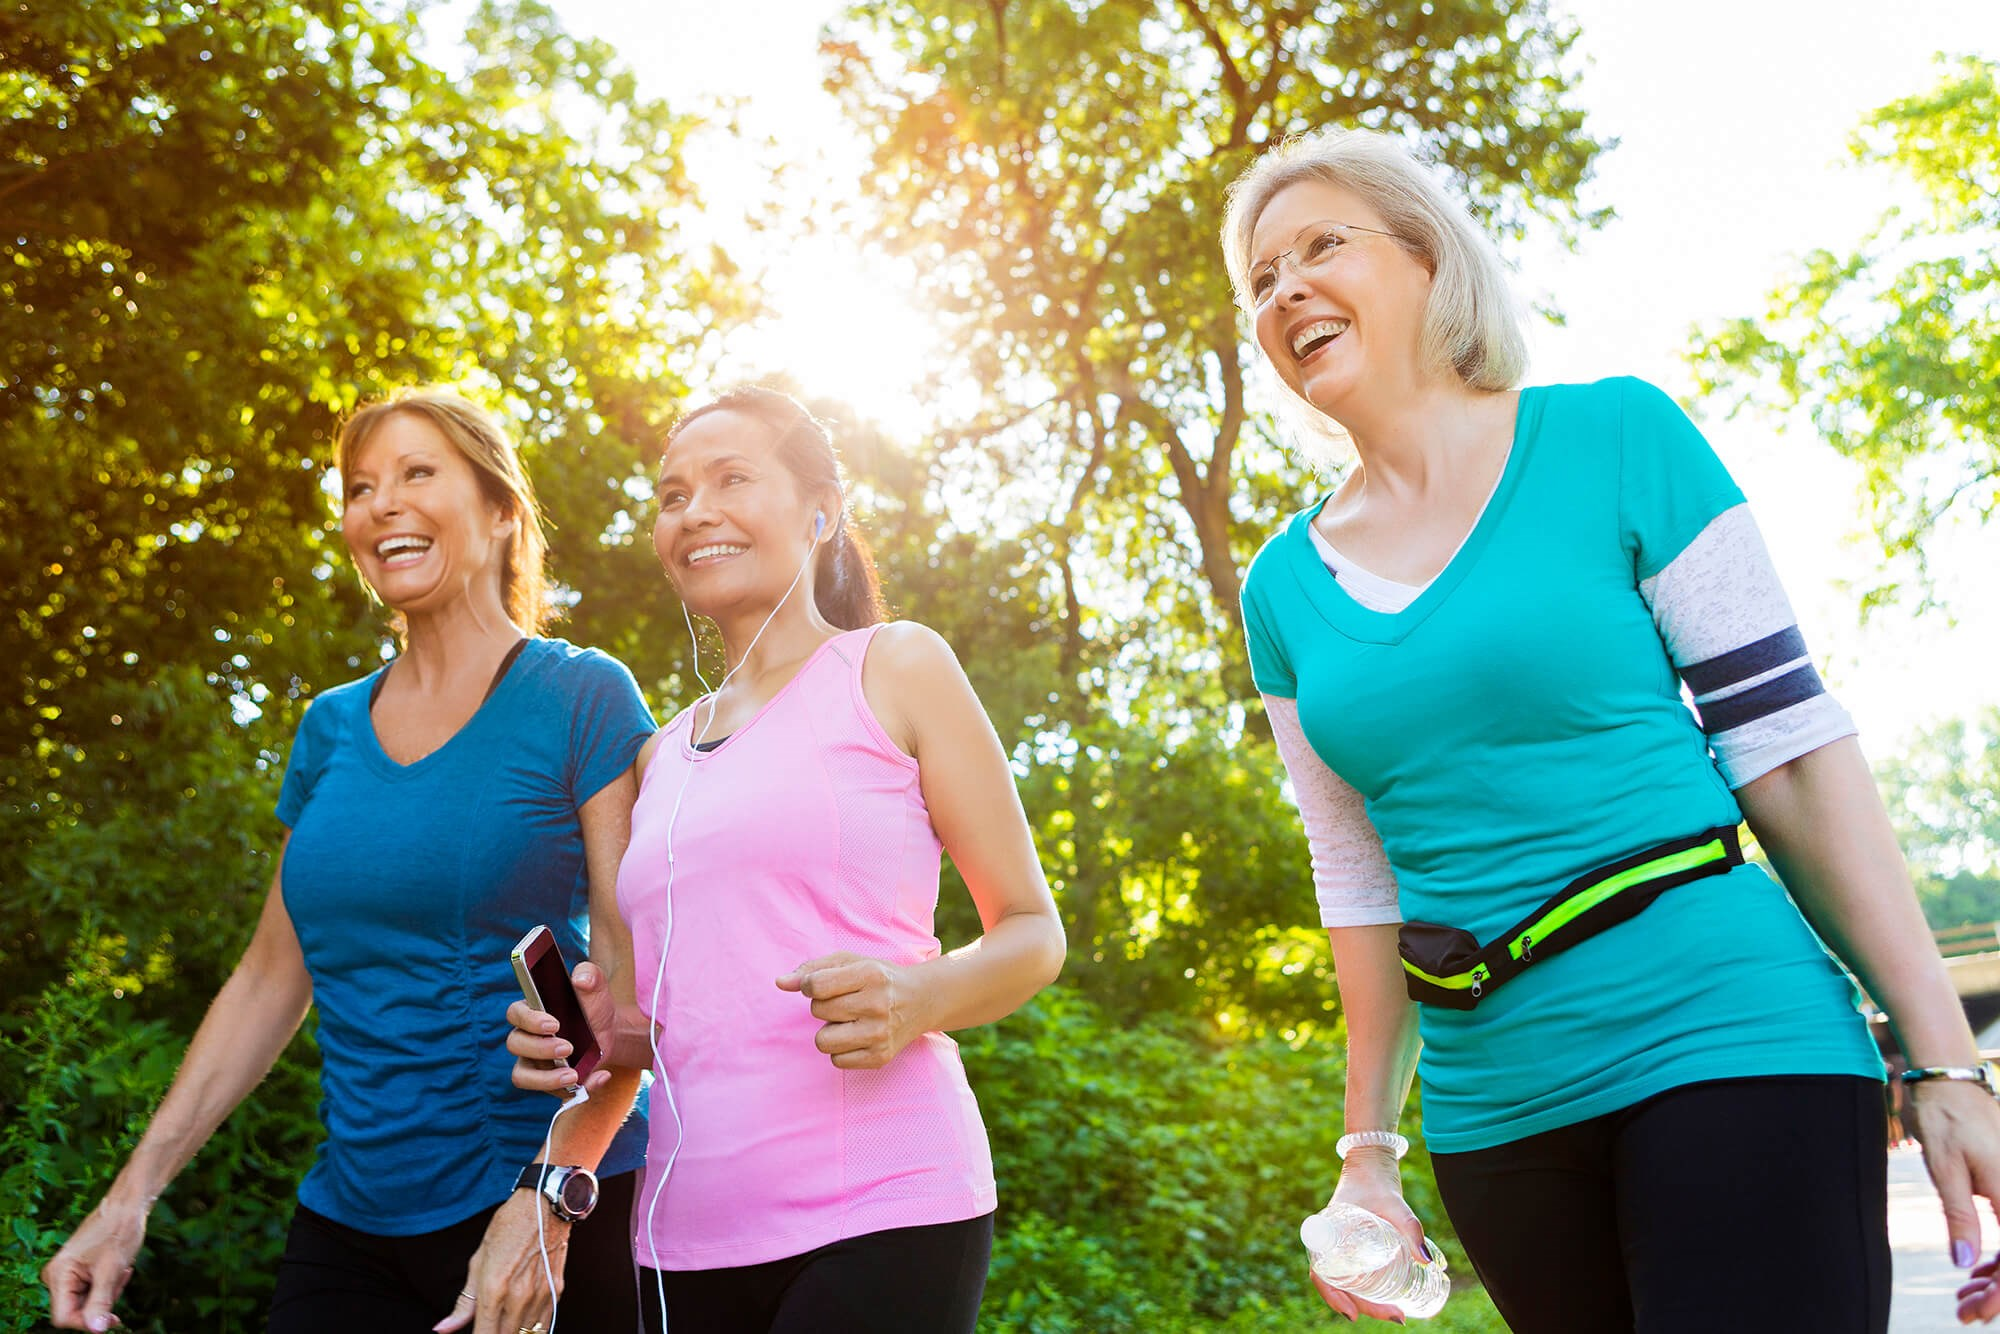 Researchers examined the association between cancer outcomes and RPA, with particular attention to frequency, intensity, duration, and type of exercise performed.